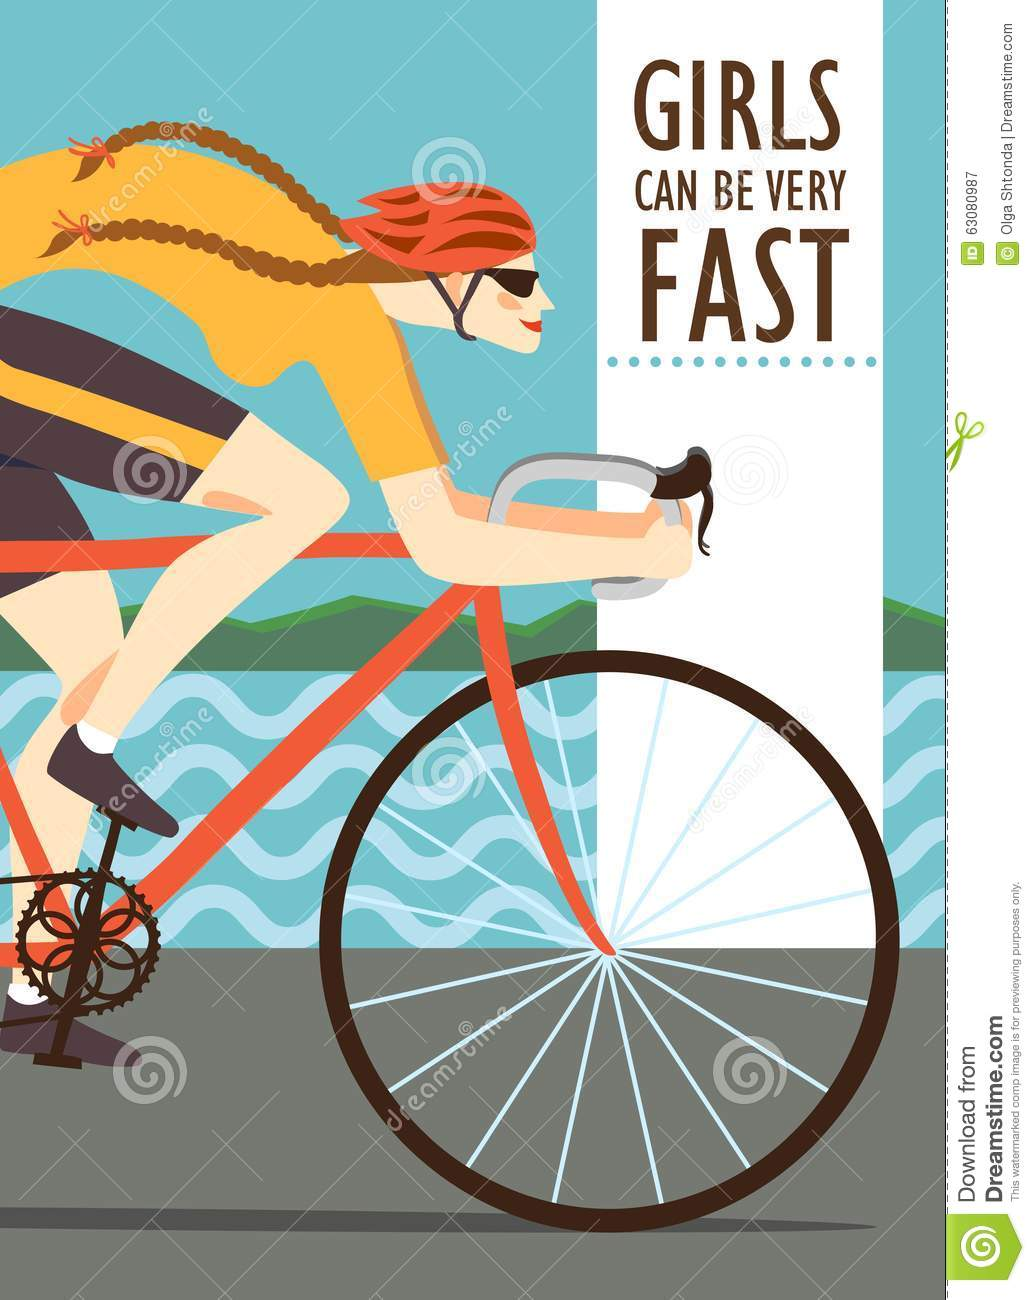 Download Femme Rapide Emballant L'affiche De Cycliste Illustration Stock - Illustration du actif, chemin: 63080987